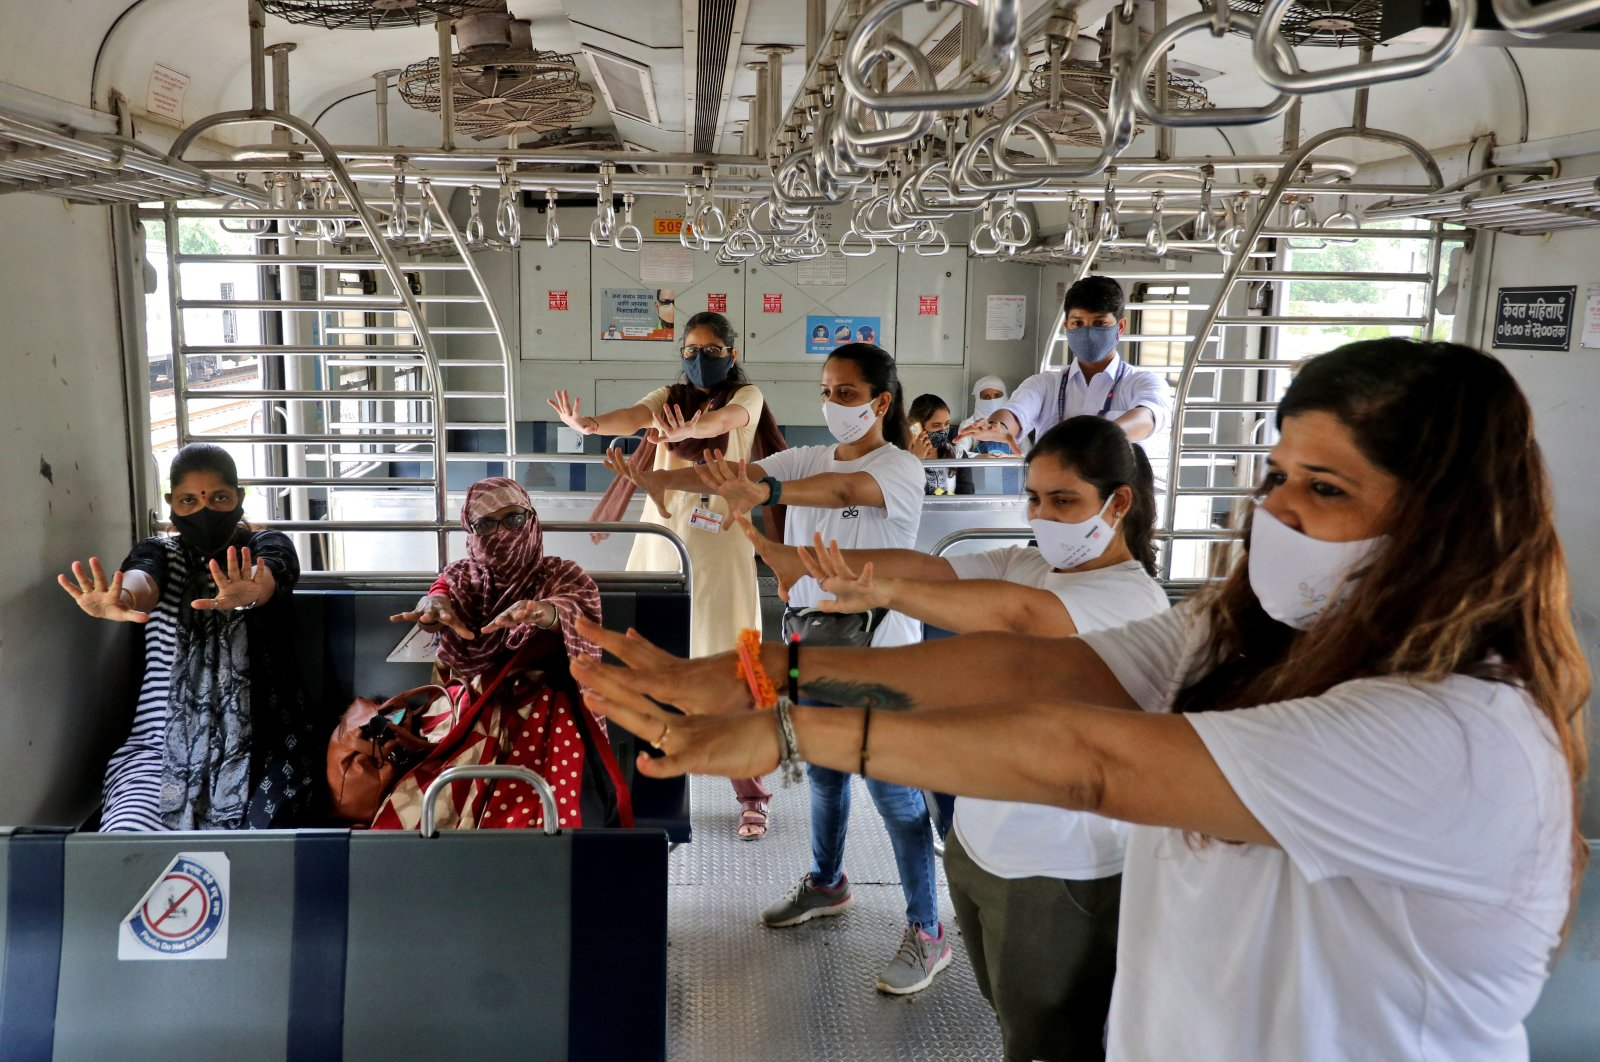 Women perform yoga in a local train on the occasion of International Yoga Day, amid the ongoing COVID-19 pandemic, in Mumbai, India, June 21, 2021. (Reuters Photo)